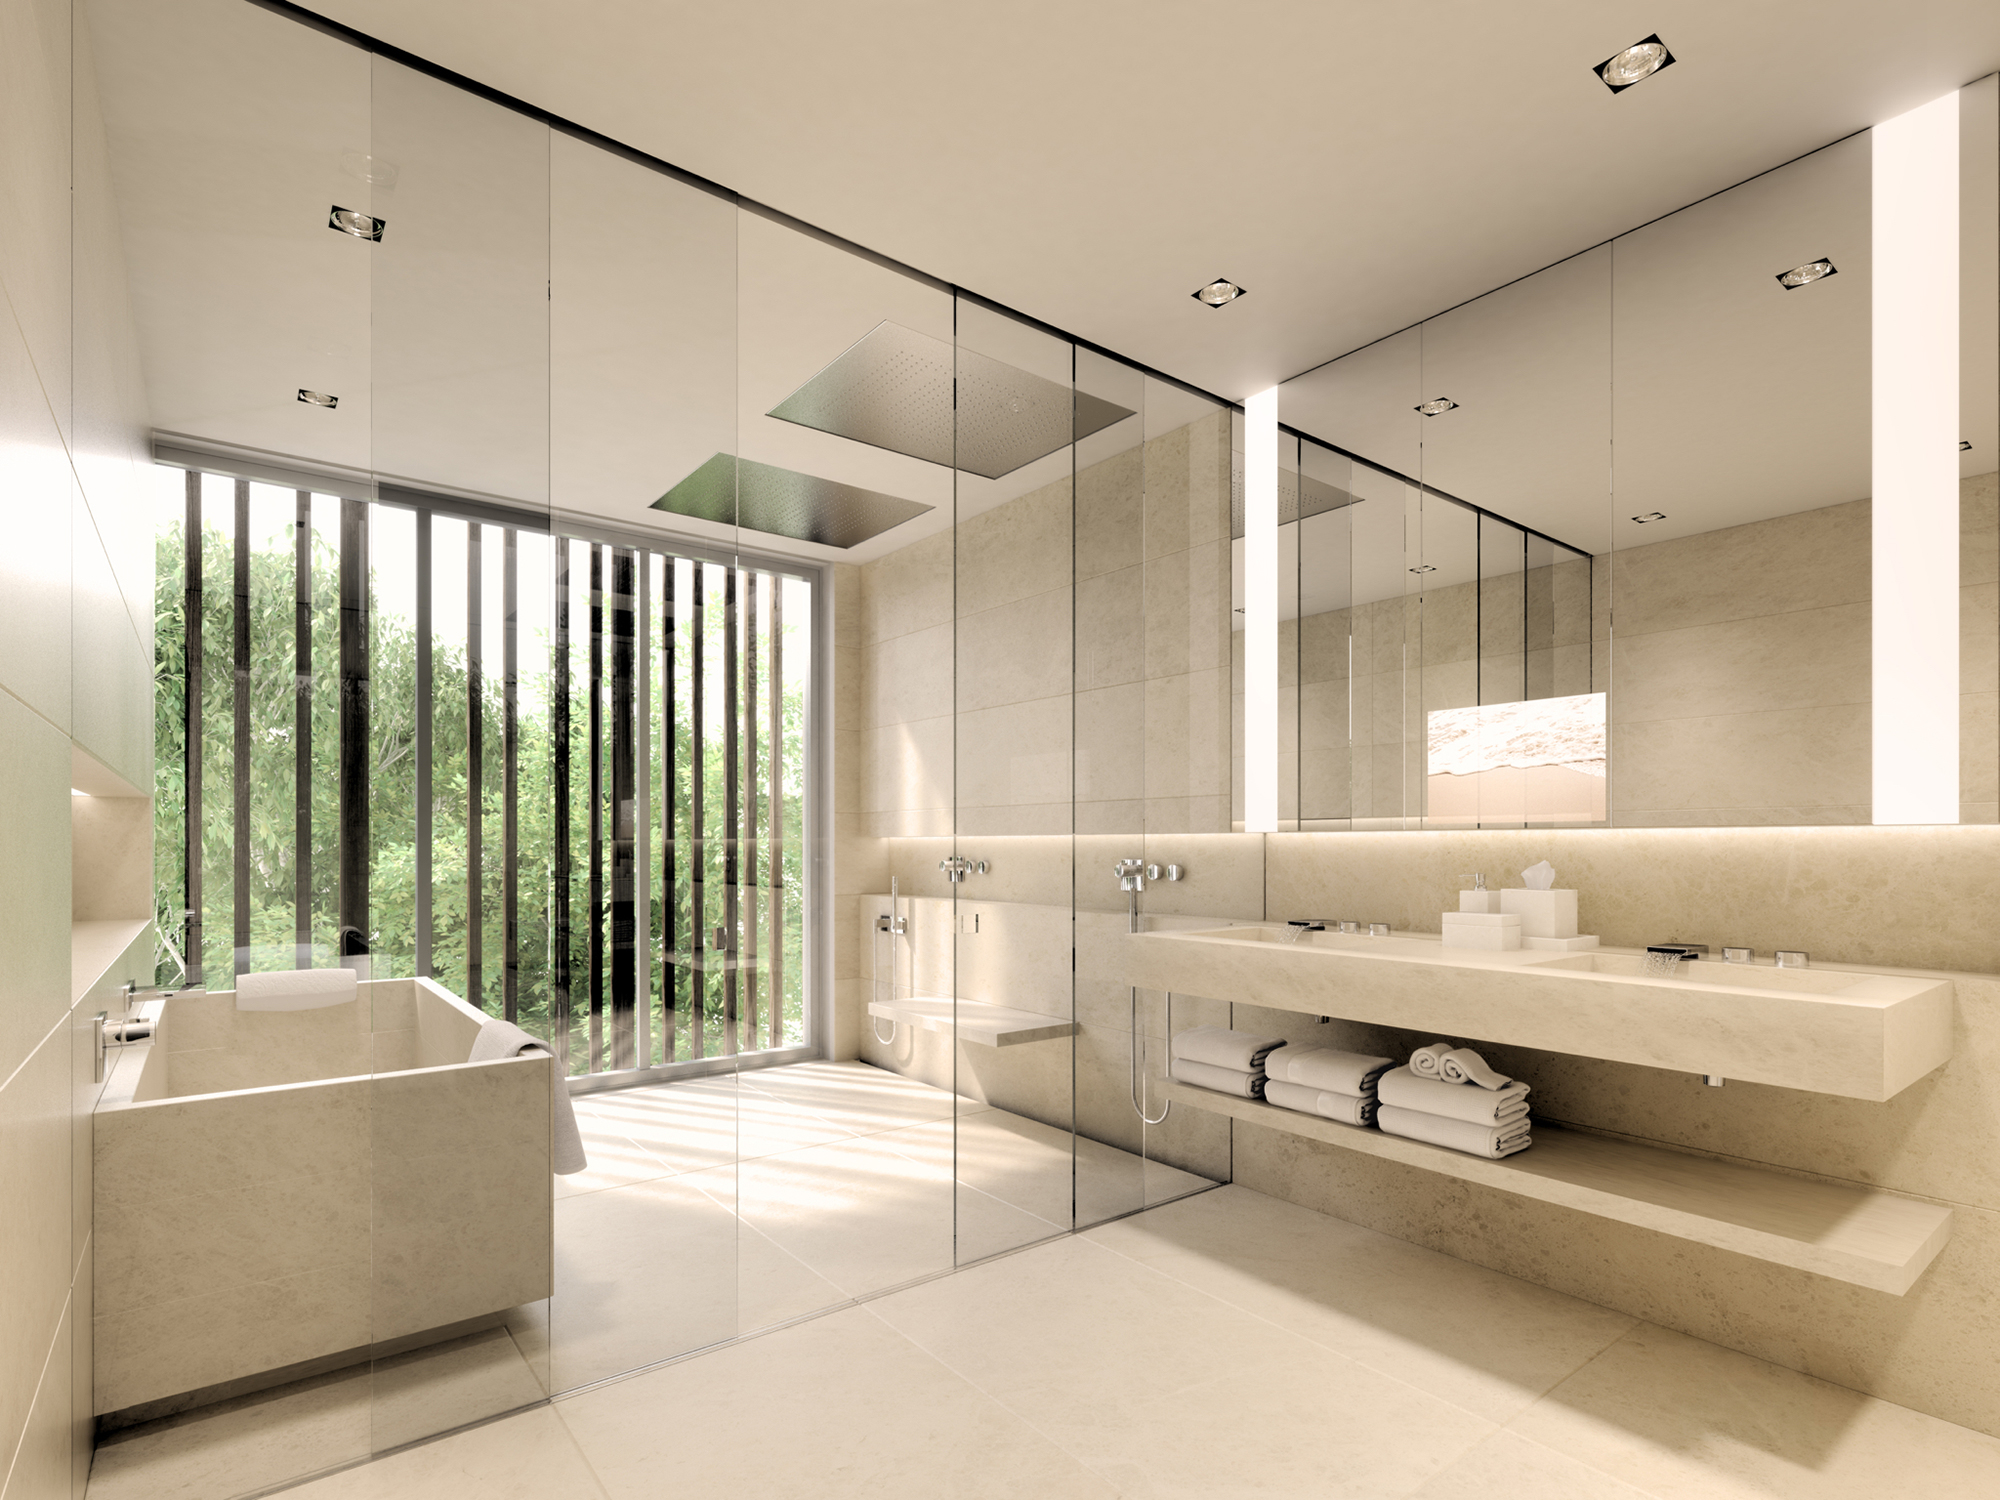 Parchment Colored Matte Lacquer Finishes And Wood Accents Carry Through Each Residence Master Bathrooms Feature Dornbracht Rain Shower Fittings A